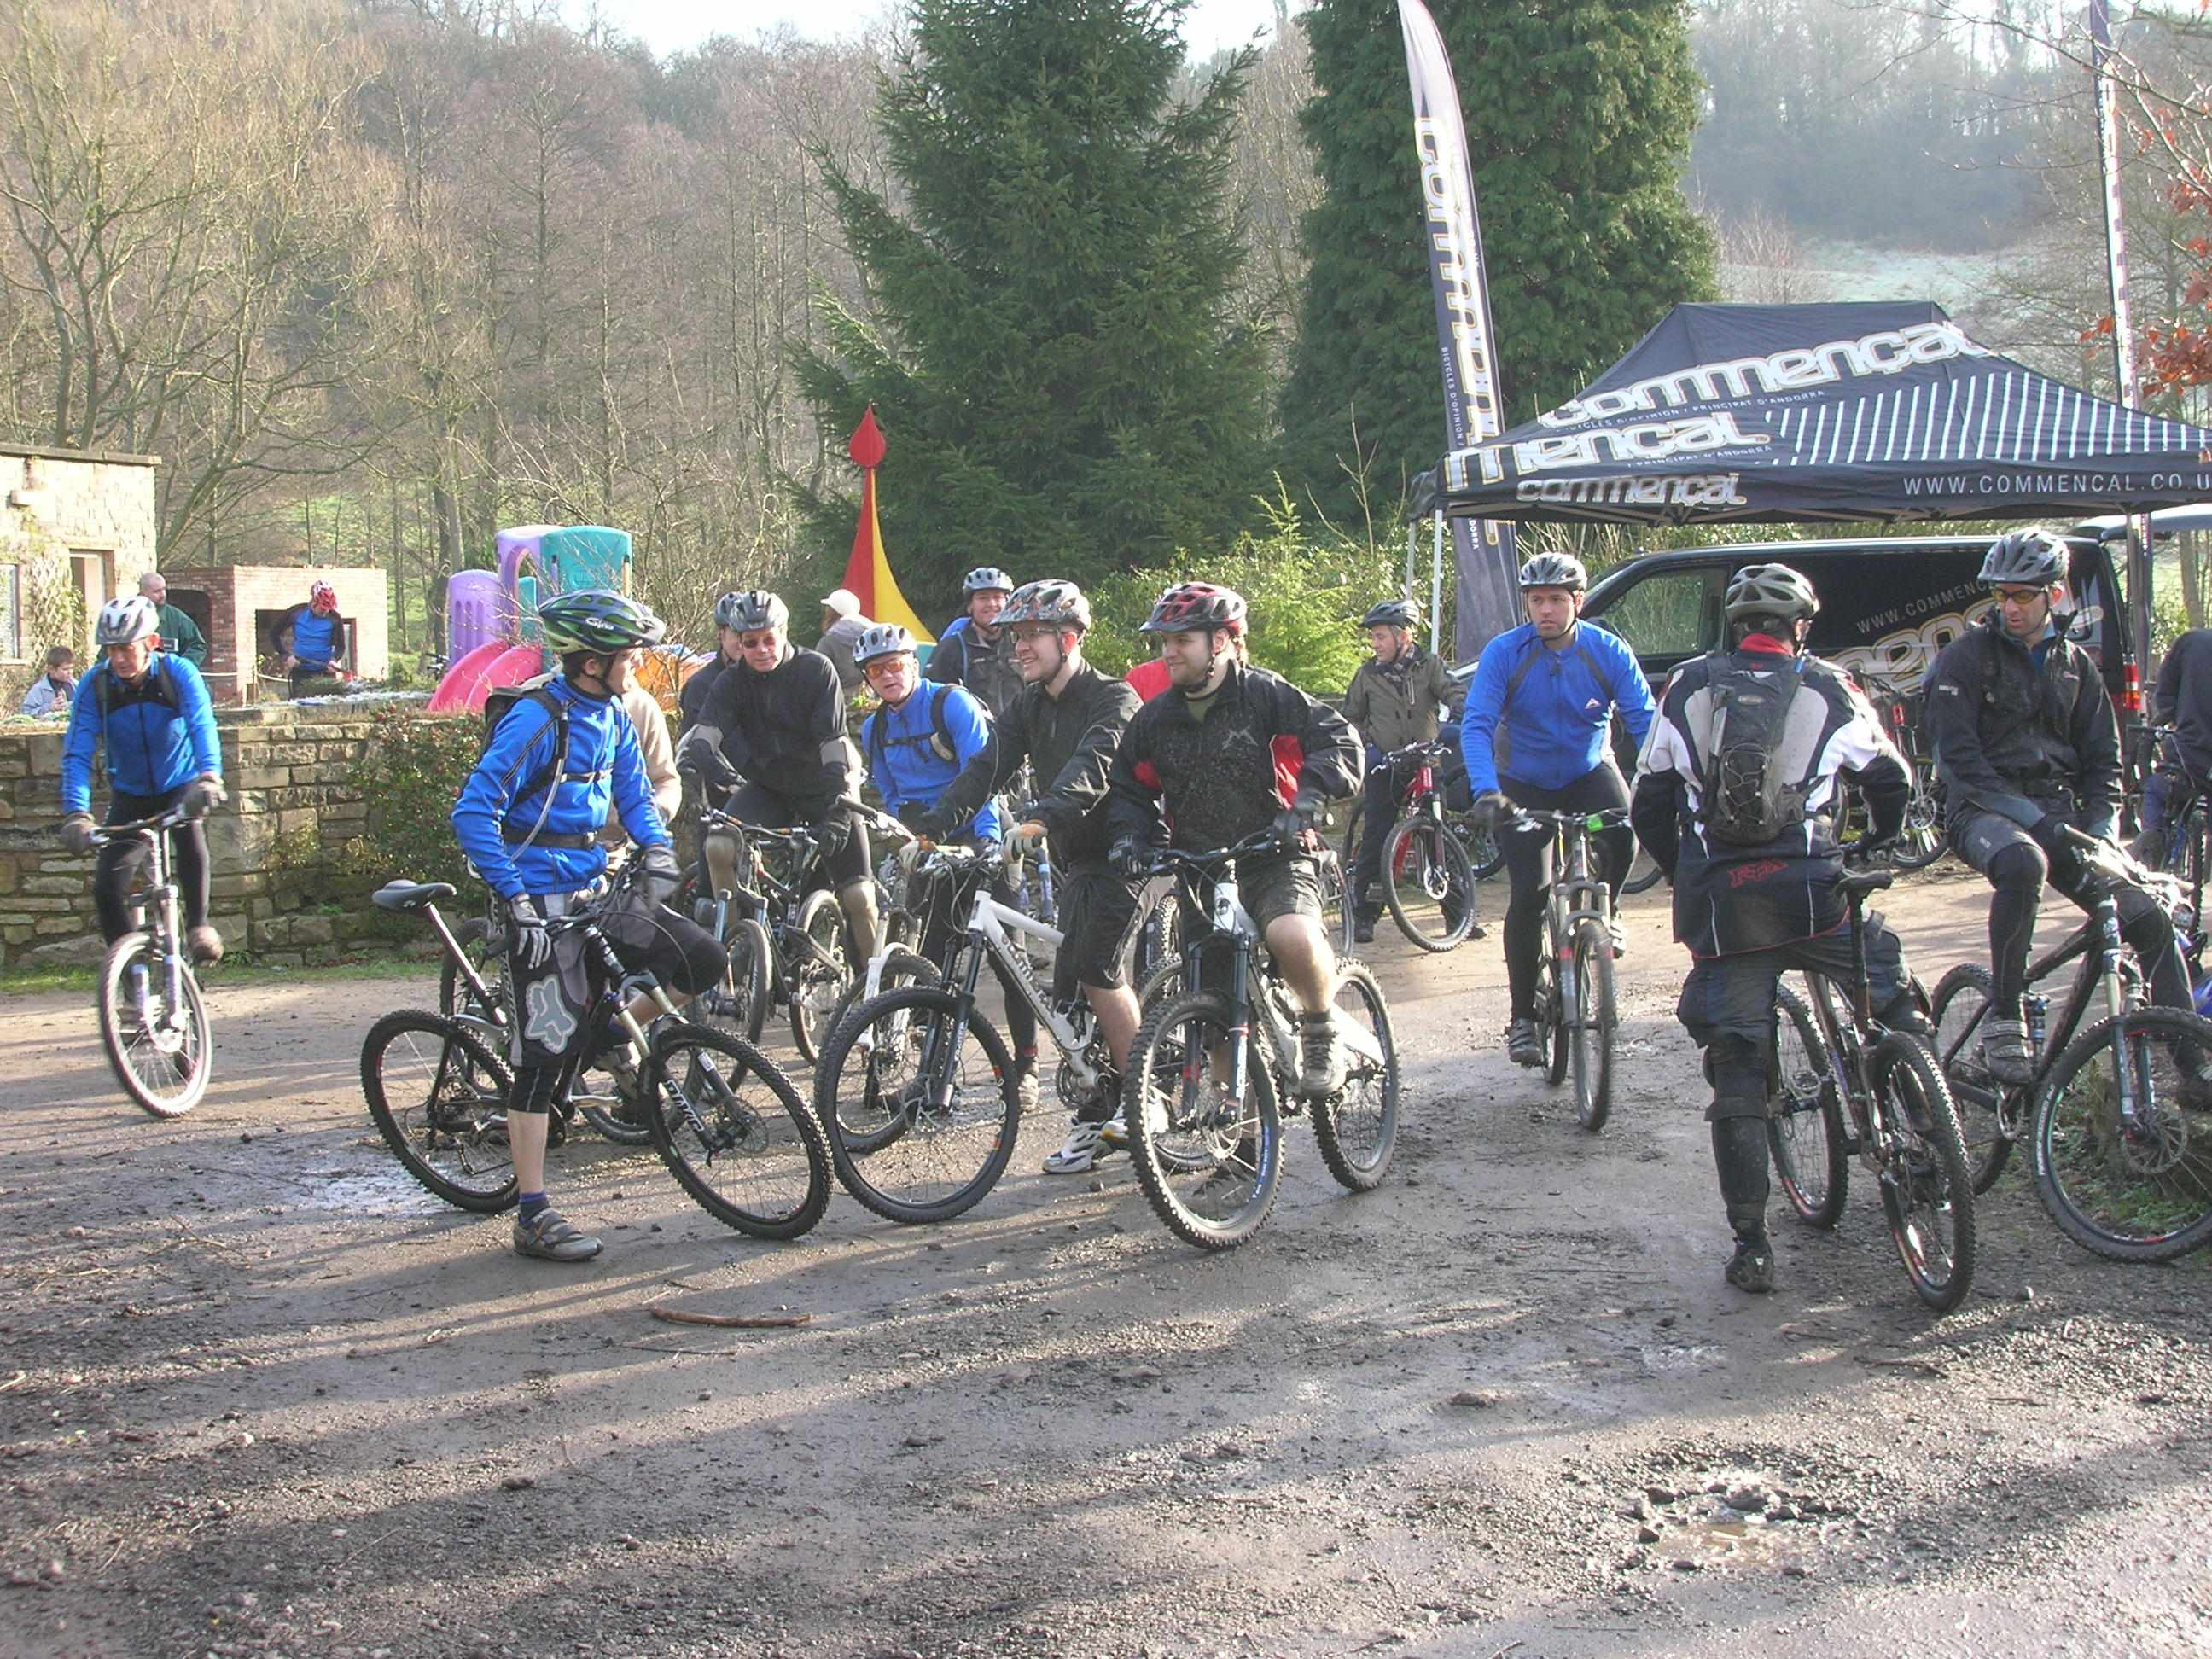 Riders at the 2007 Royles demo day